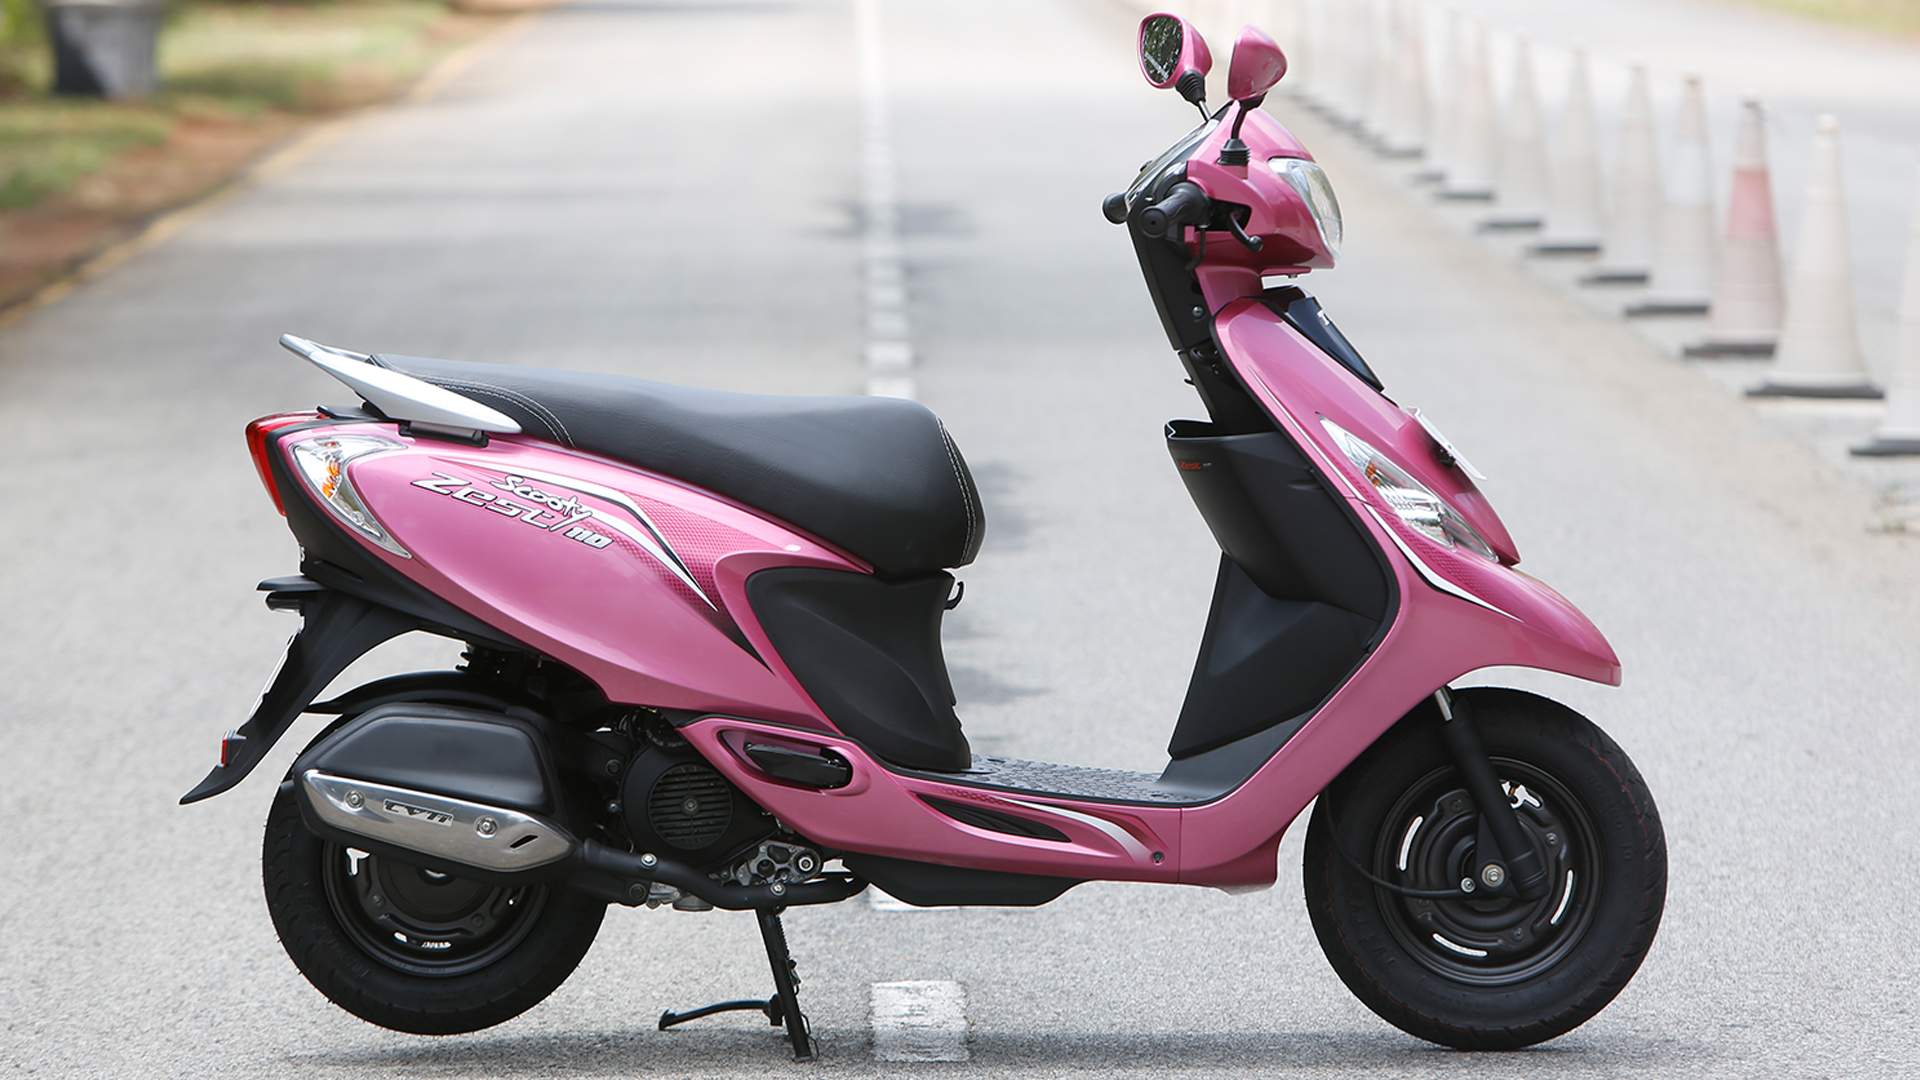 TVS Scooty Zest 110 2014 - Price, Mileage, Reviews, Specification ...